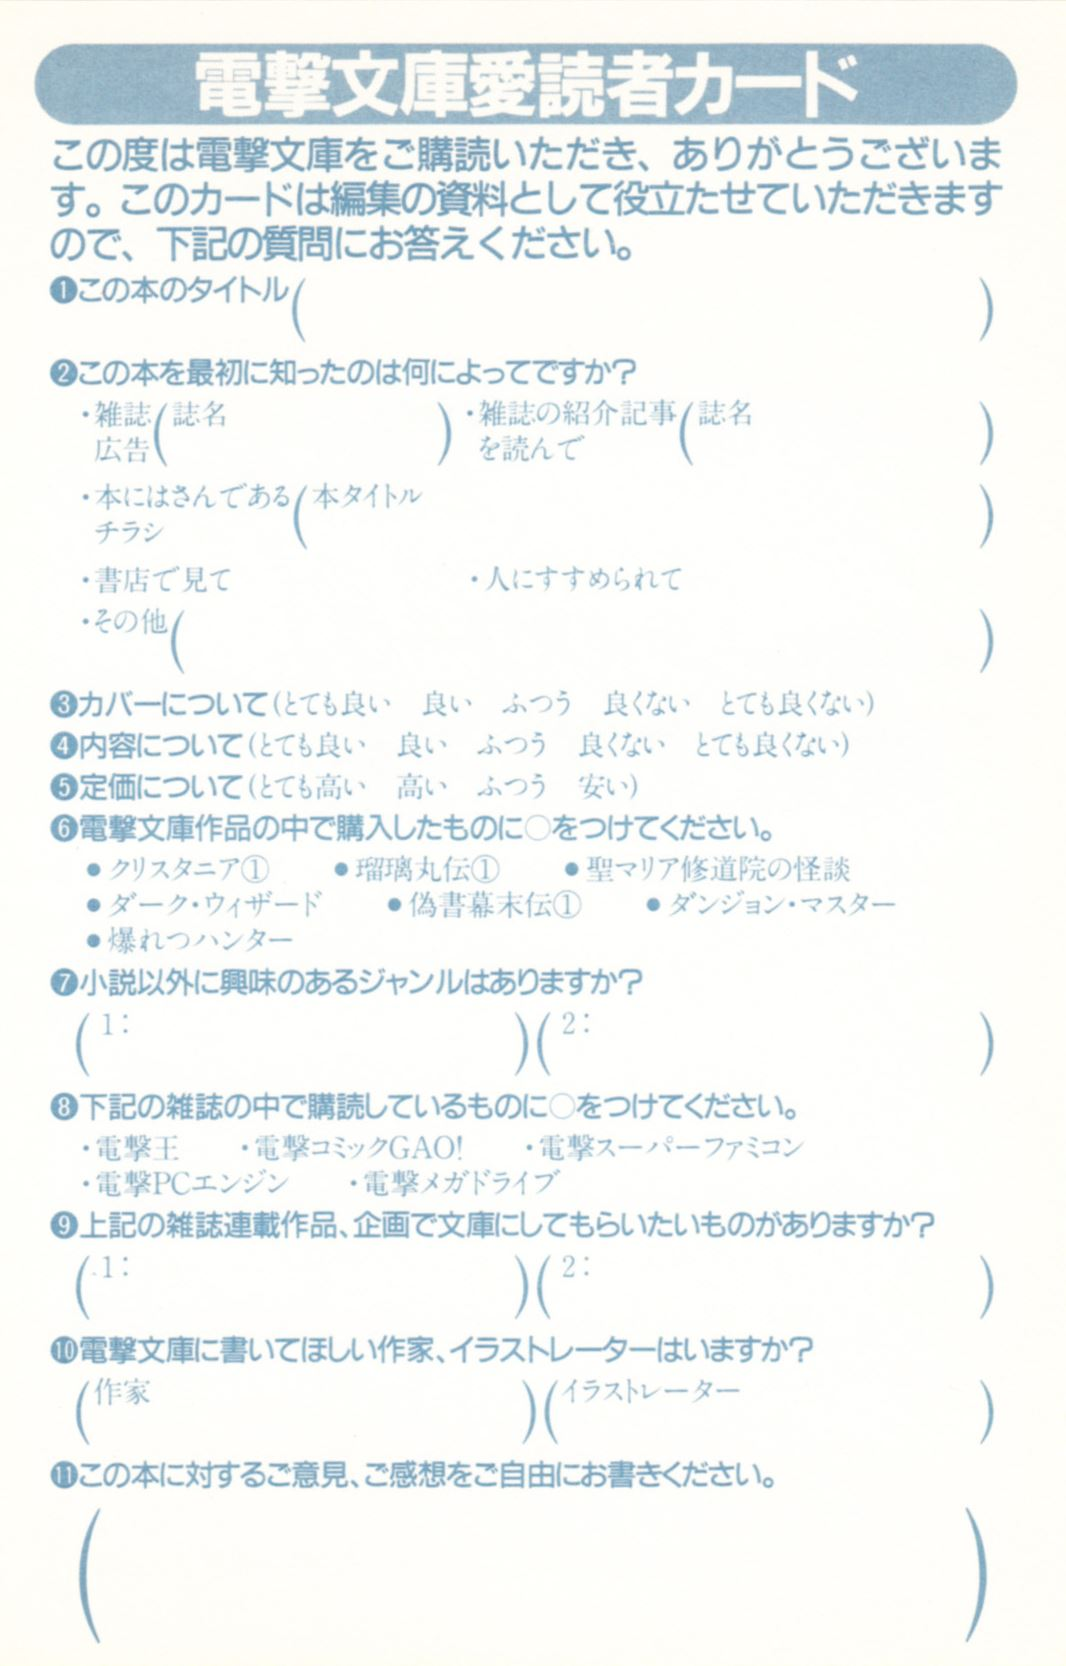 Novel - Dungeon Master - JP - Registration Card - Back - Scan